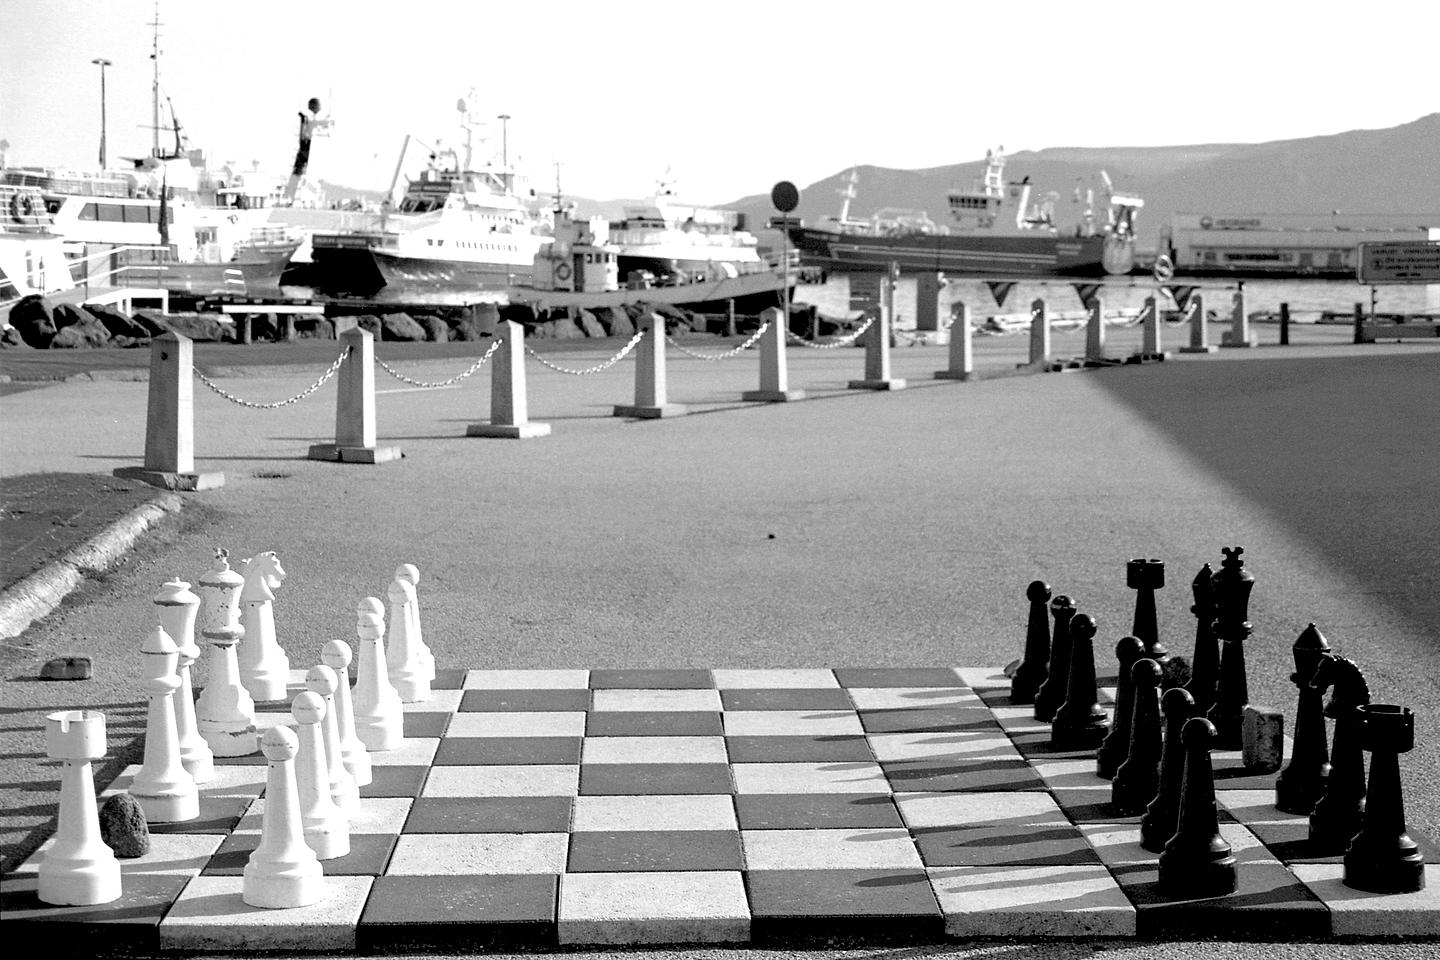 Chess at the Pier, Reykjavik 2019   Edition 1 of 2